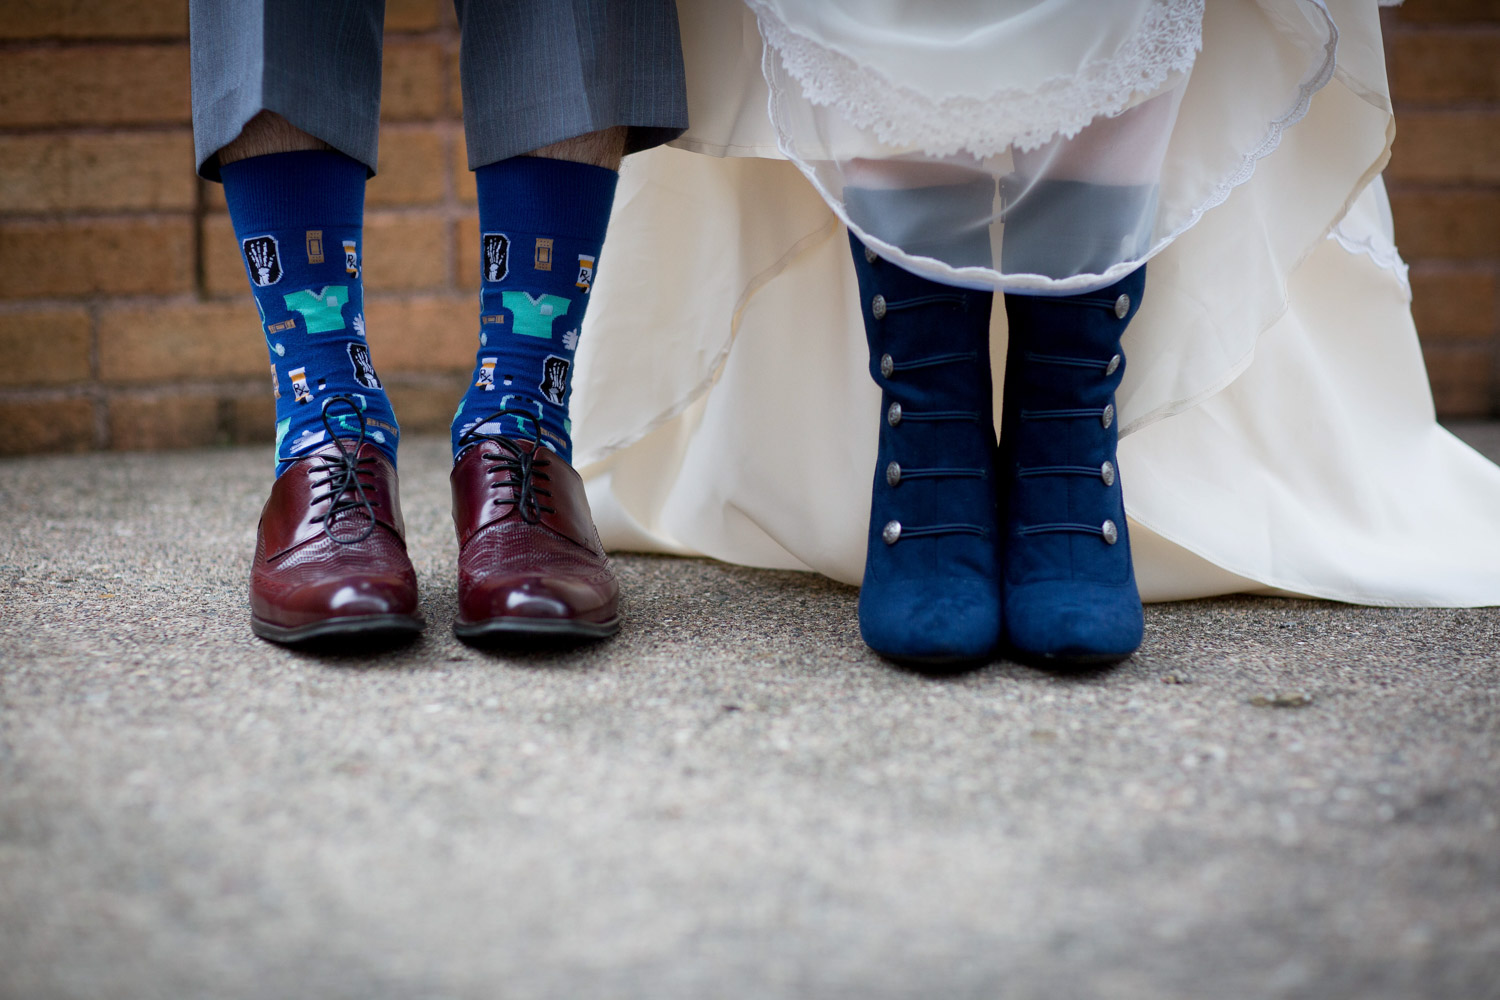 08-mount-zion-jewish-temple-wedding-day-bride-groom-details-shoes-navy-suede-boots-fun-doctor-socks-personality-mahonen-photography.jpg